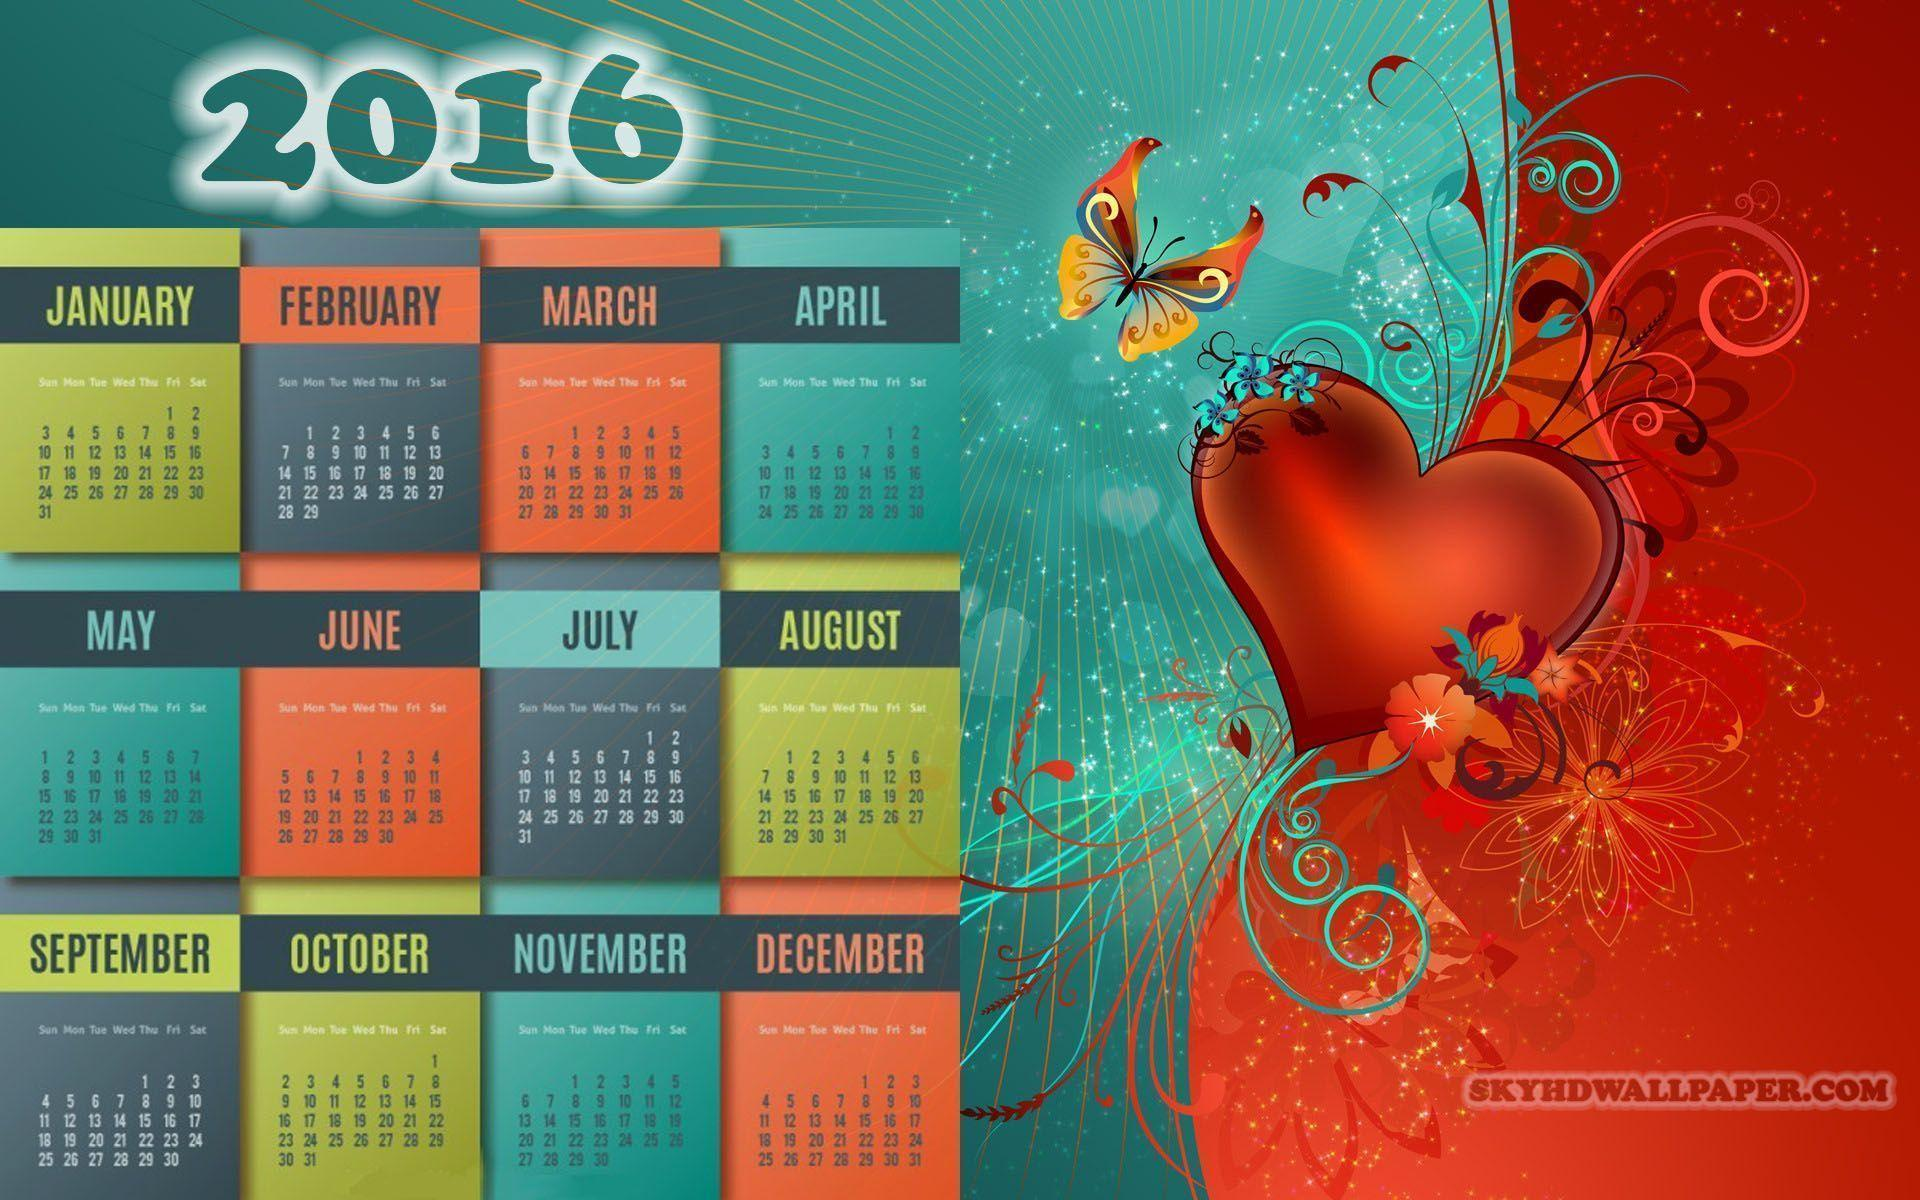 Calendar Background 2016 : Wallpapers with calendar wallpaper cave